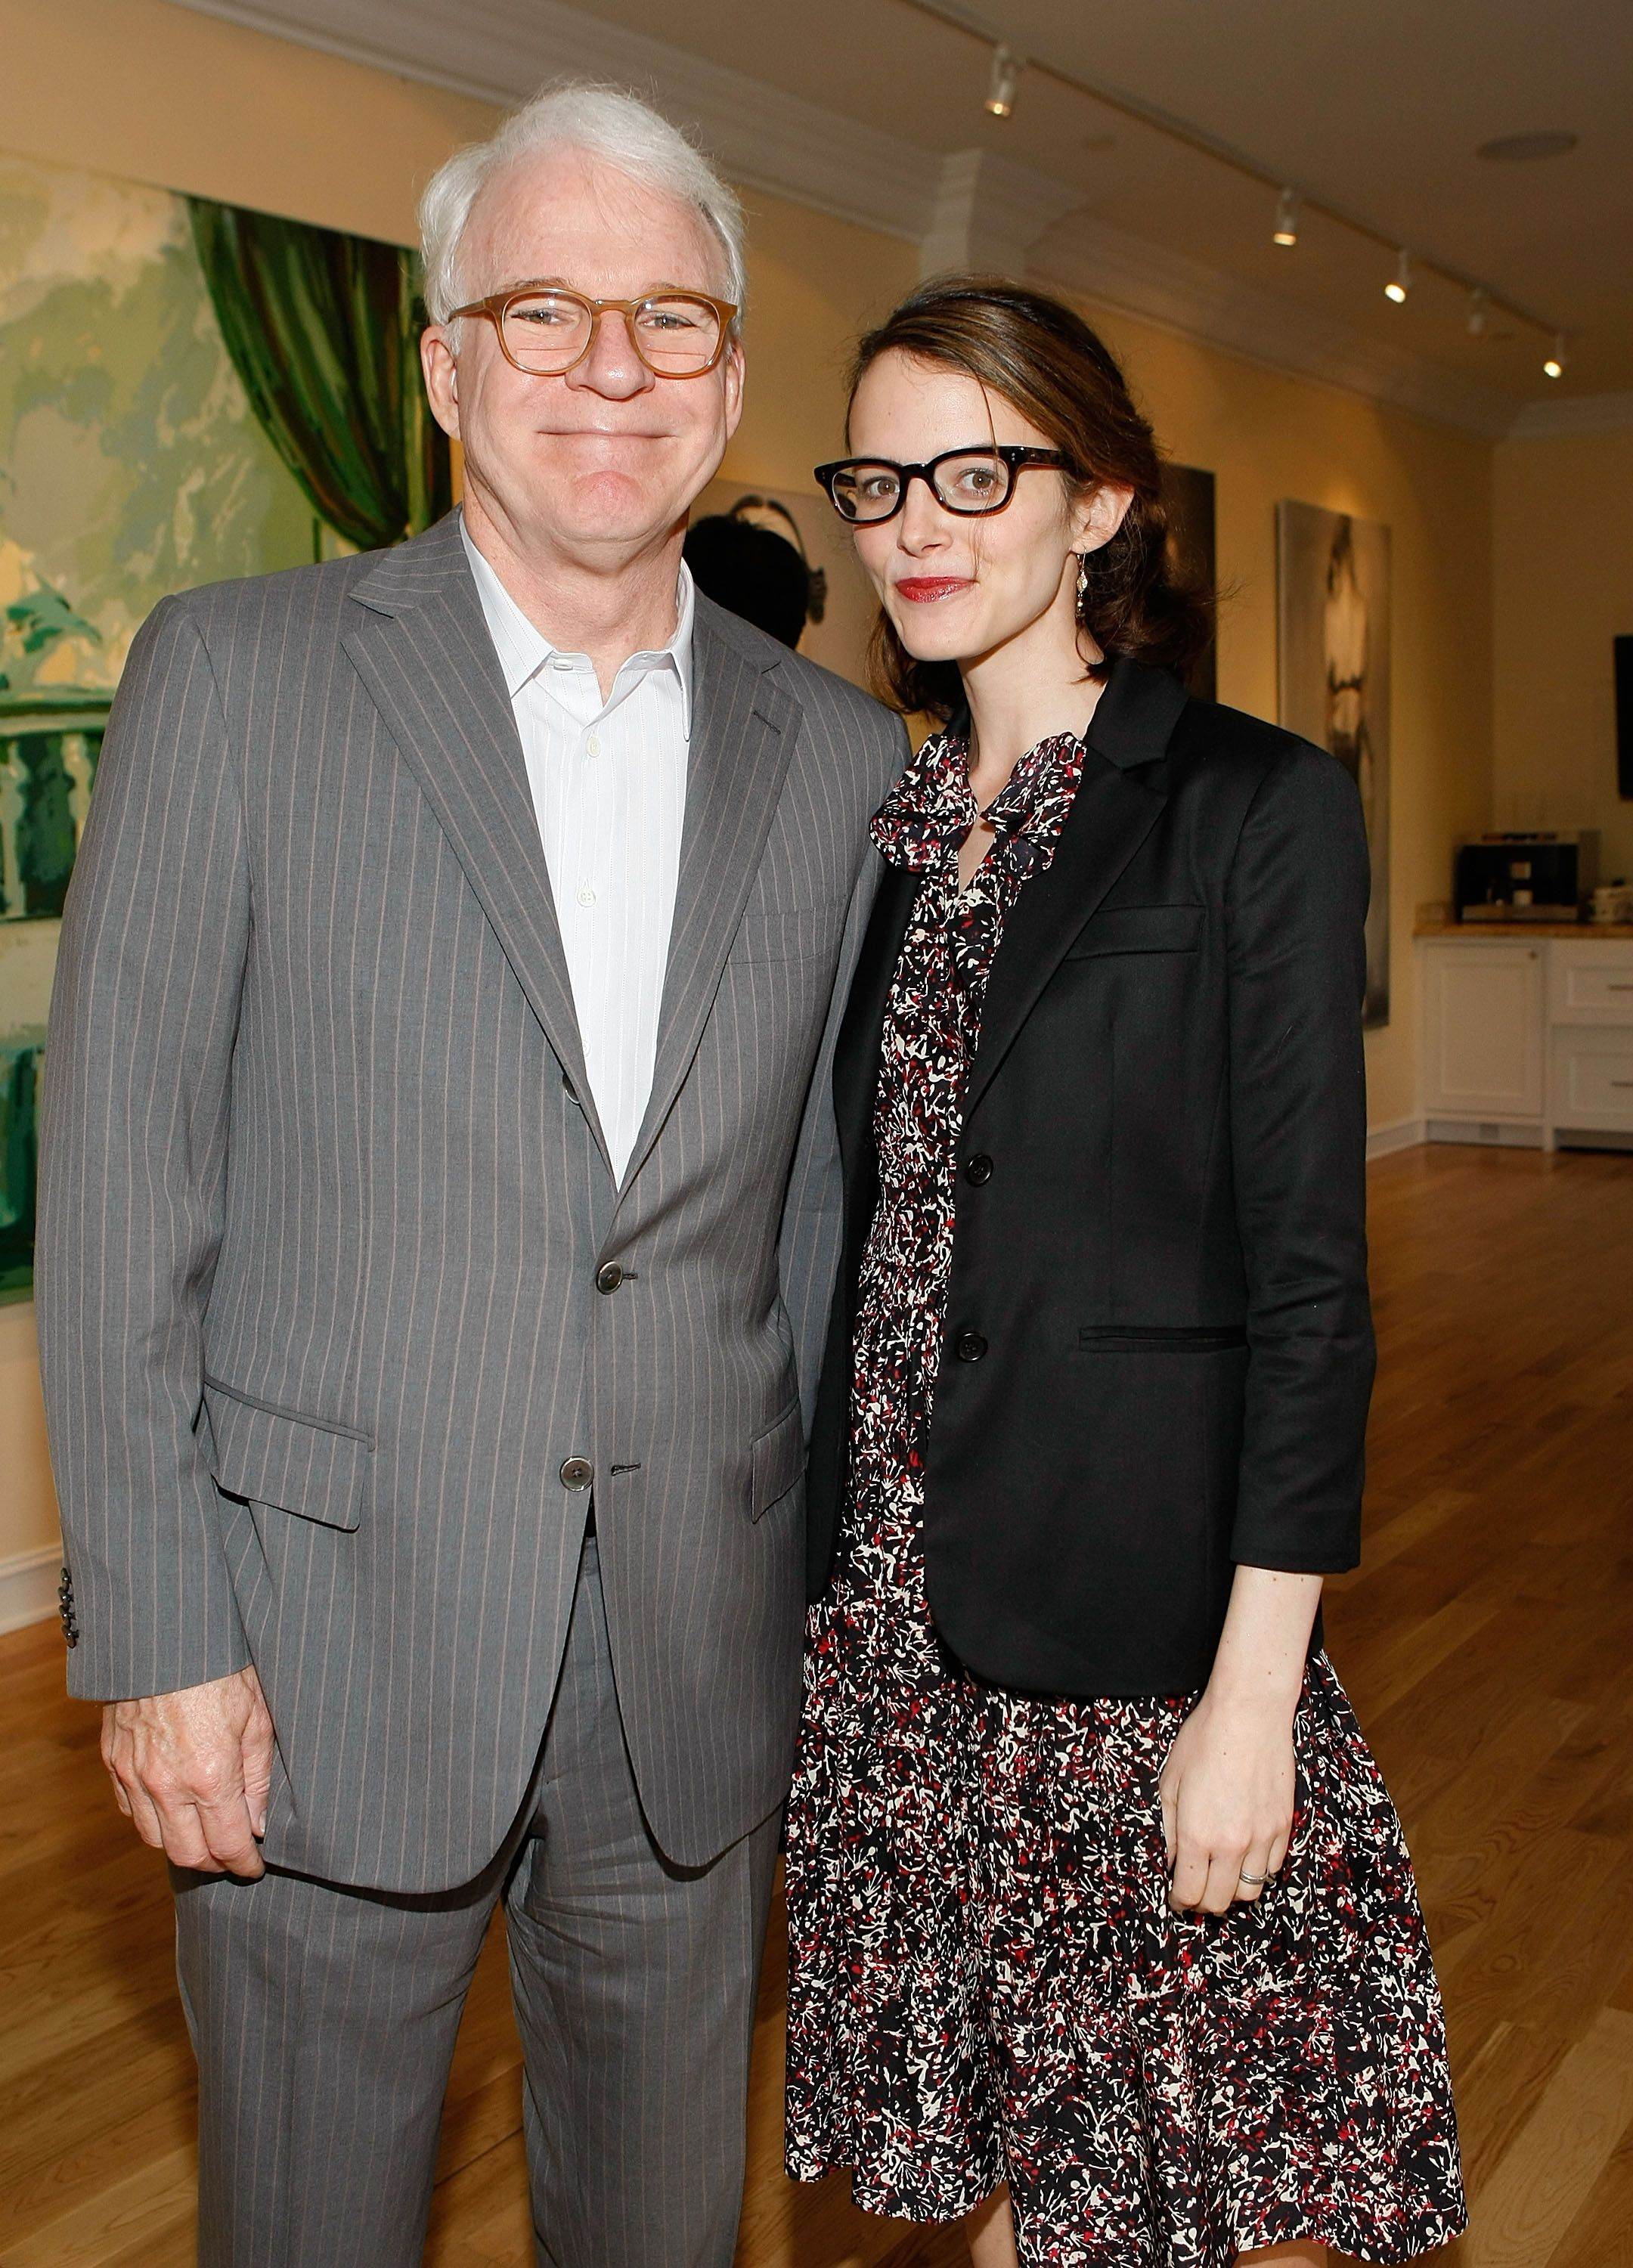 """Actor and musician Steve Martin and wife Anne Stringfield at the presentation of """"Wounded"""" curated by Carole Bayer Sager at LA Art House on May 6, 2009 